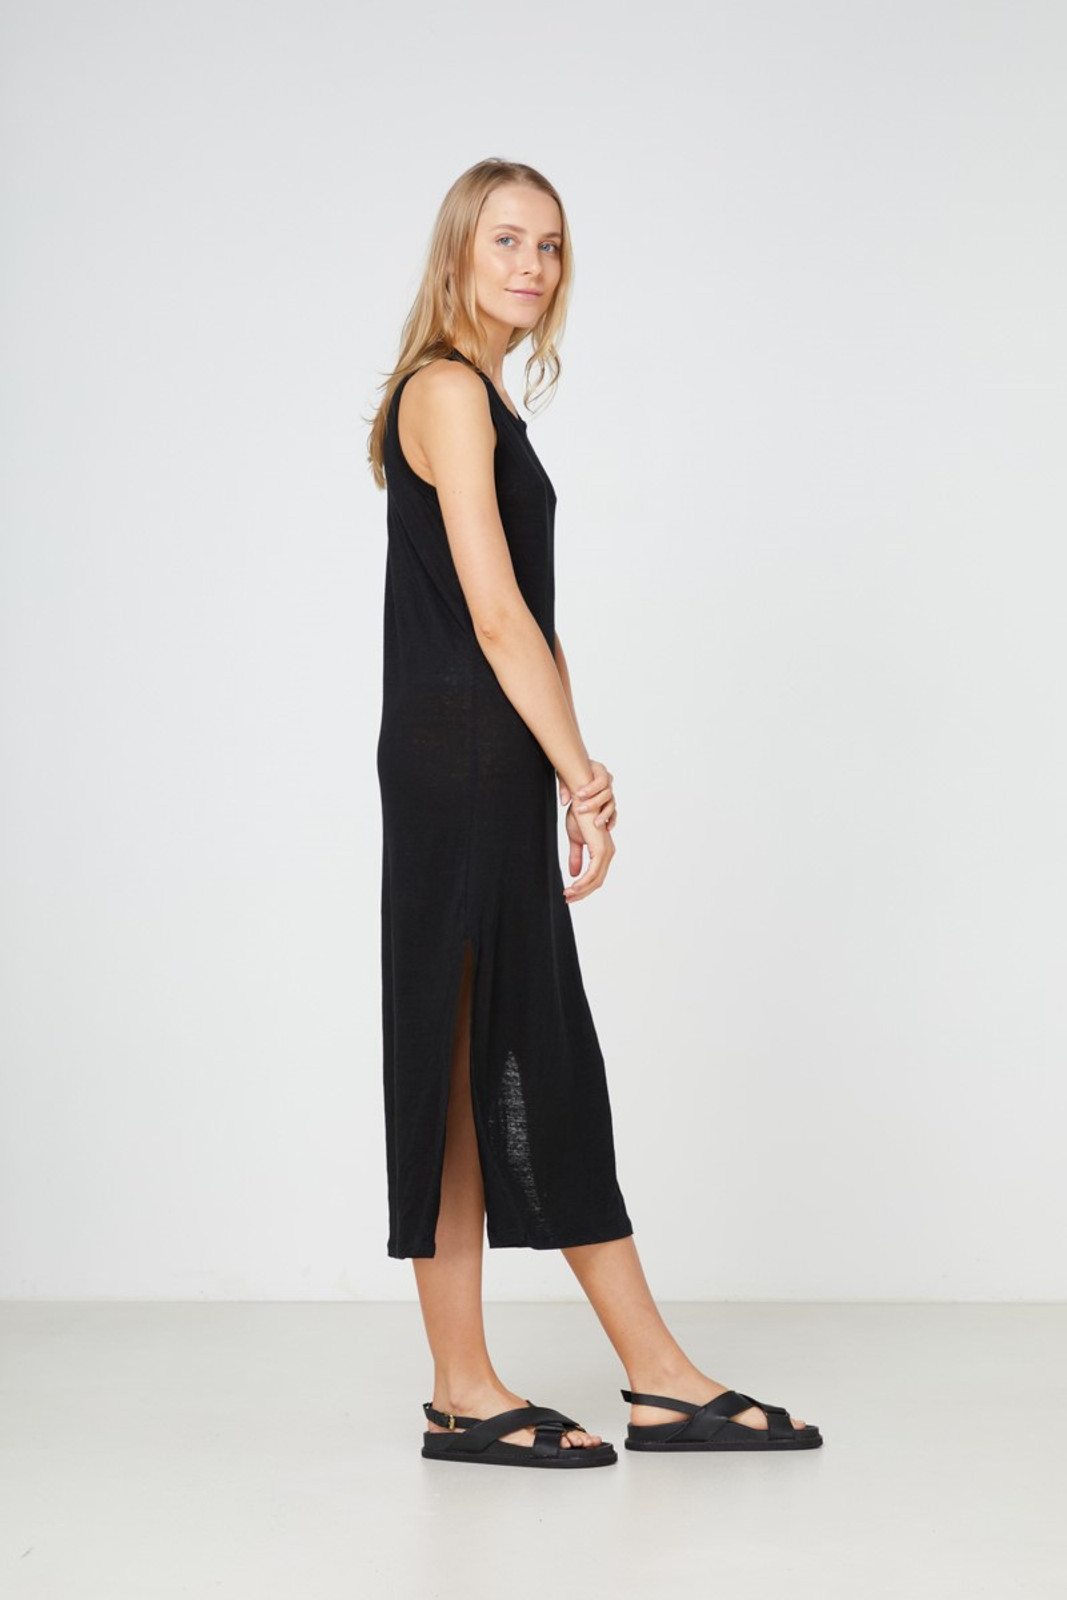 Elka Collective EC Linen Tank Dress 2.0 Black  3